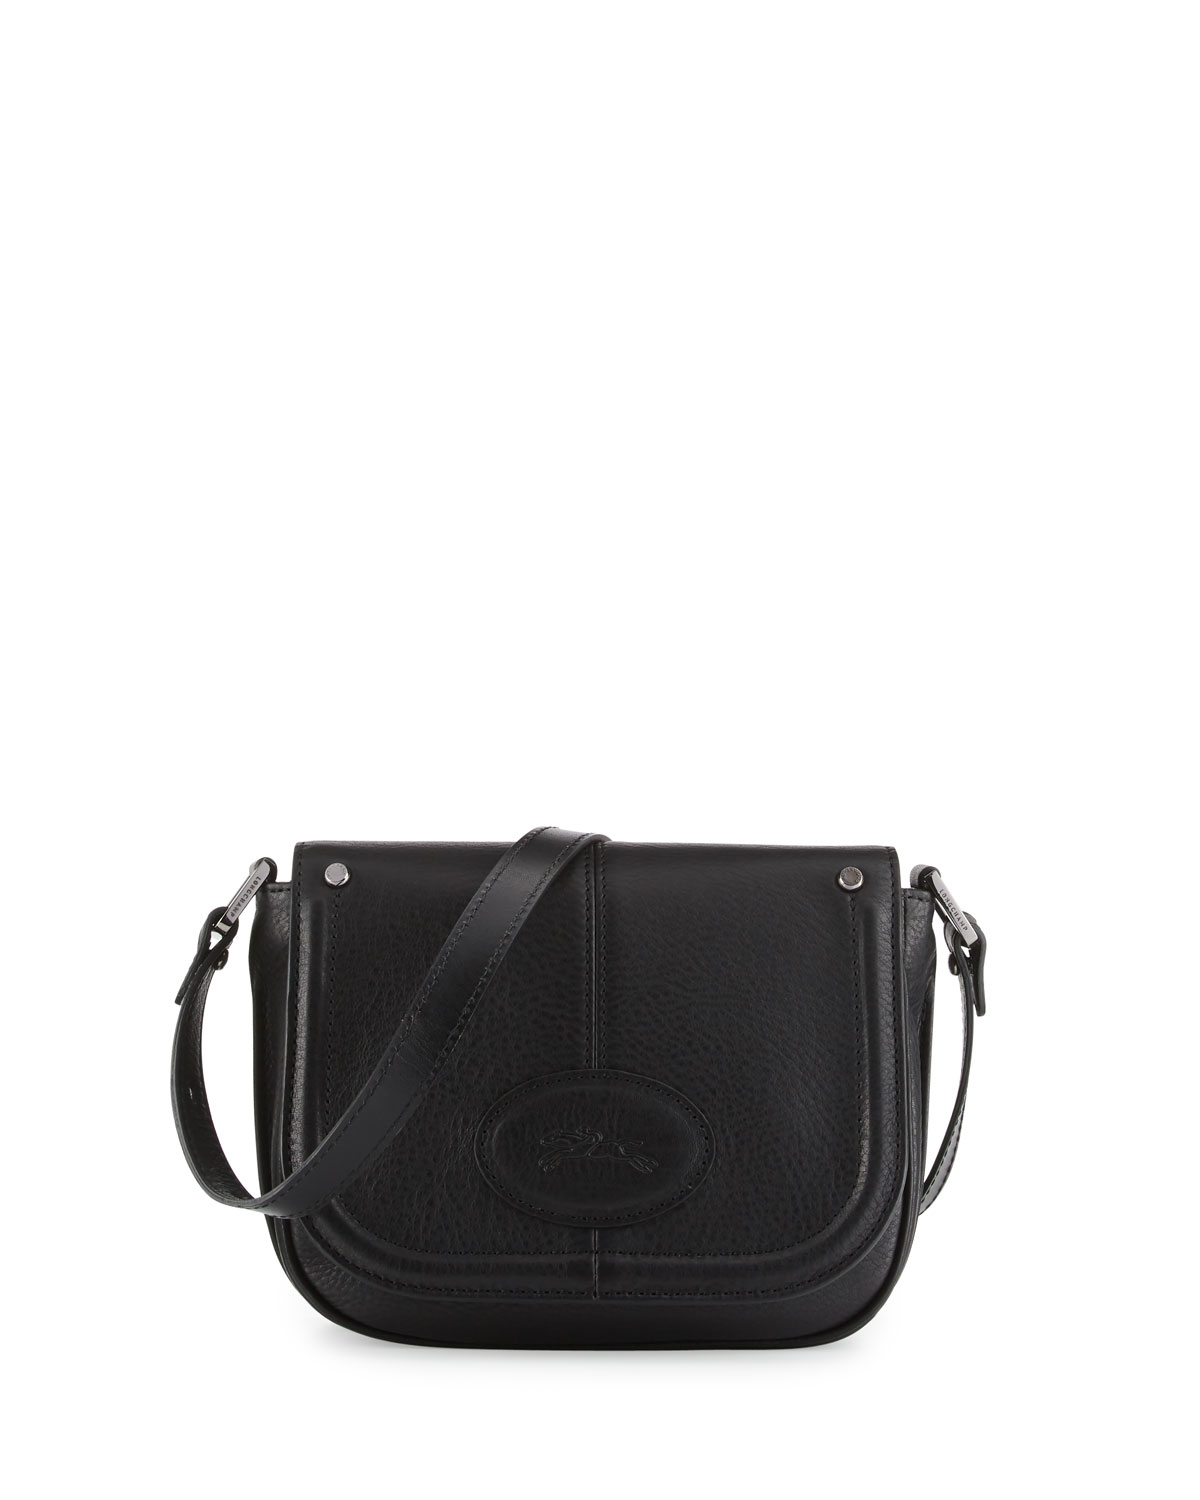 Longchamp Mystery Small Leather Crossbody Bag in Black